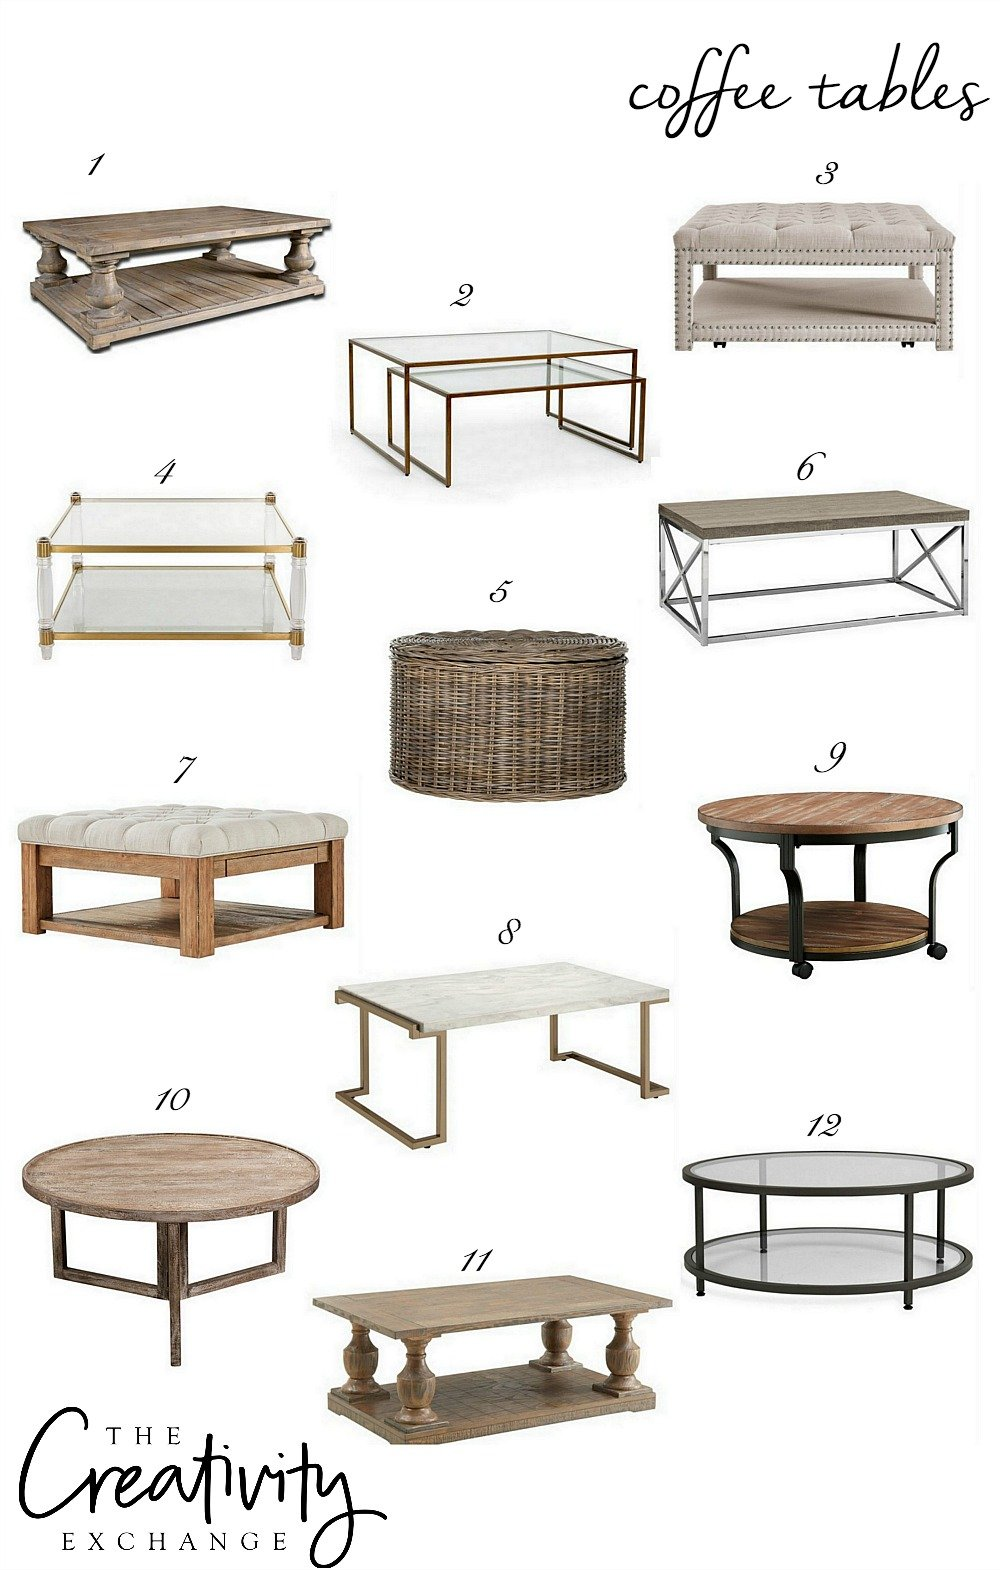 Choosing the perfect coffee table.